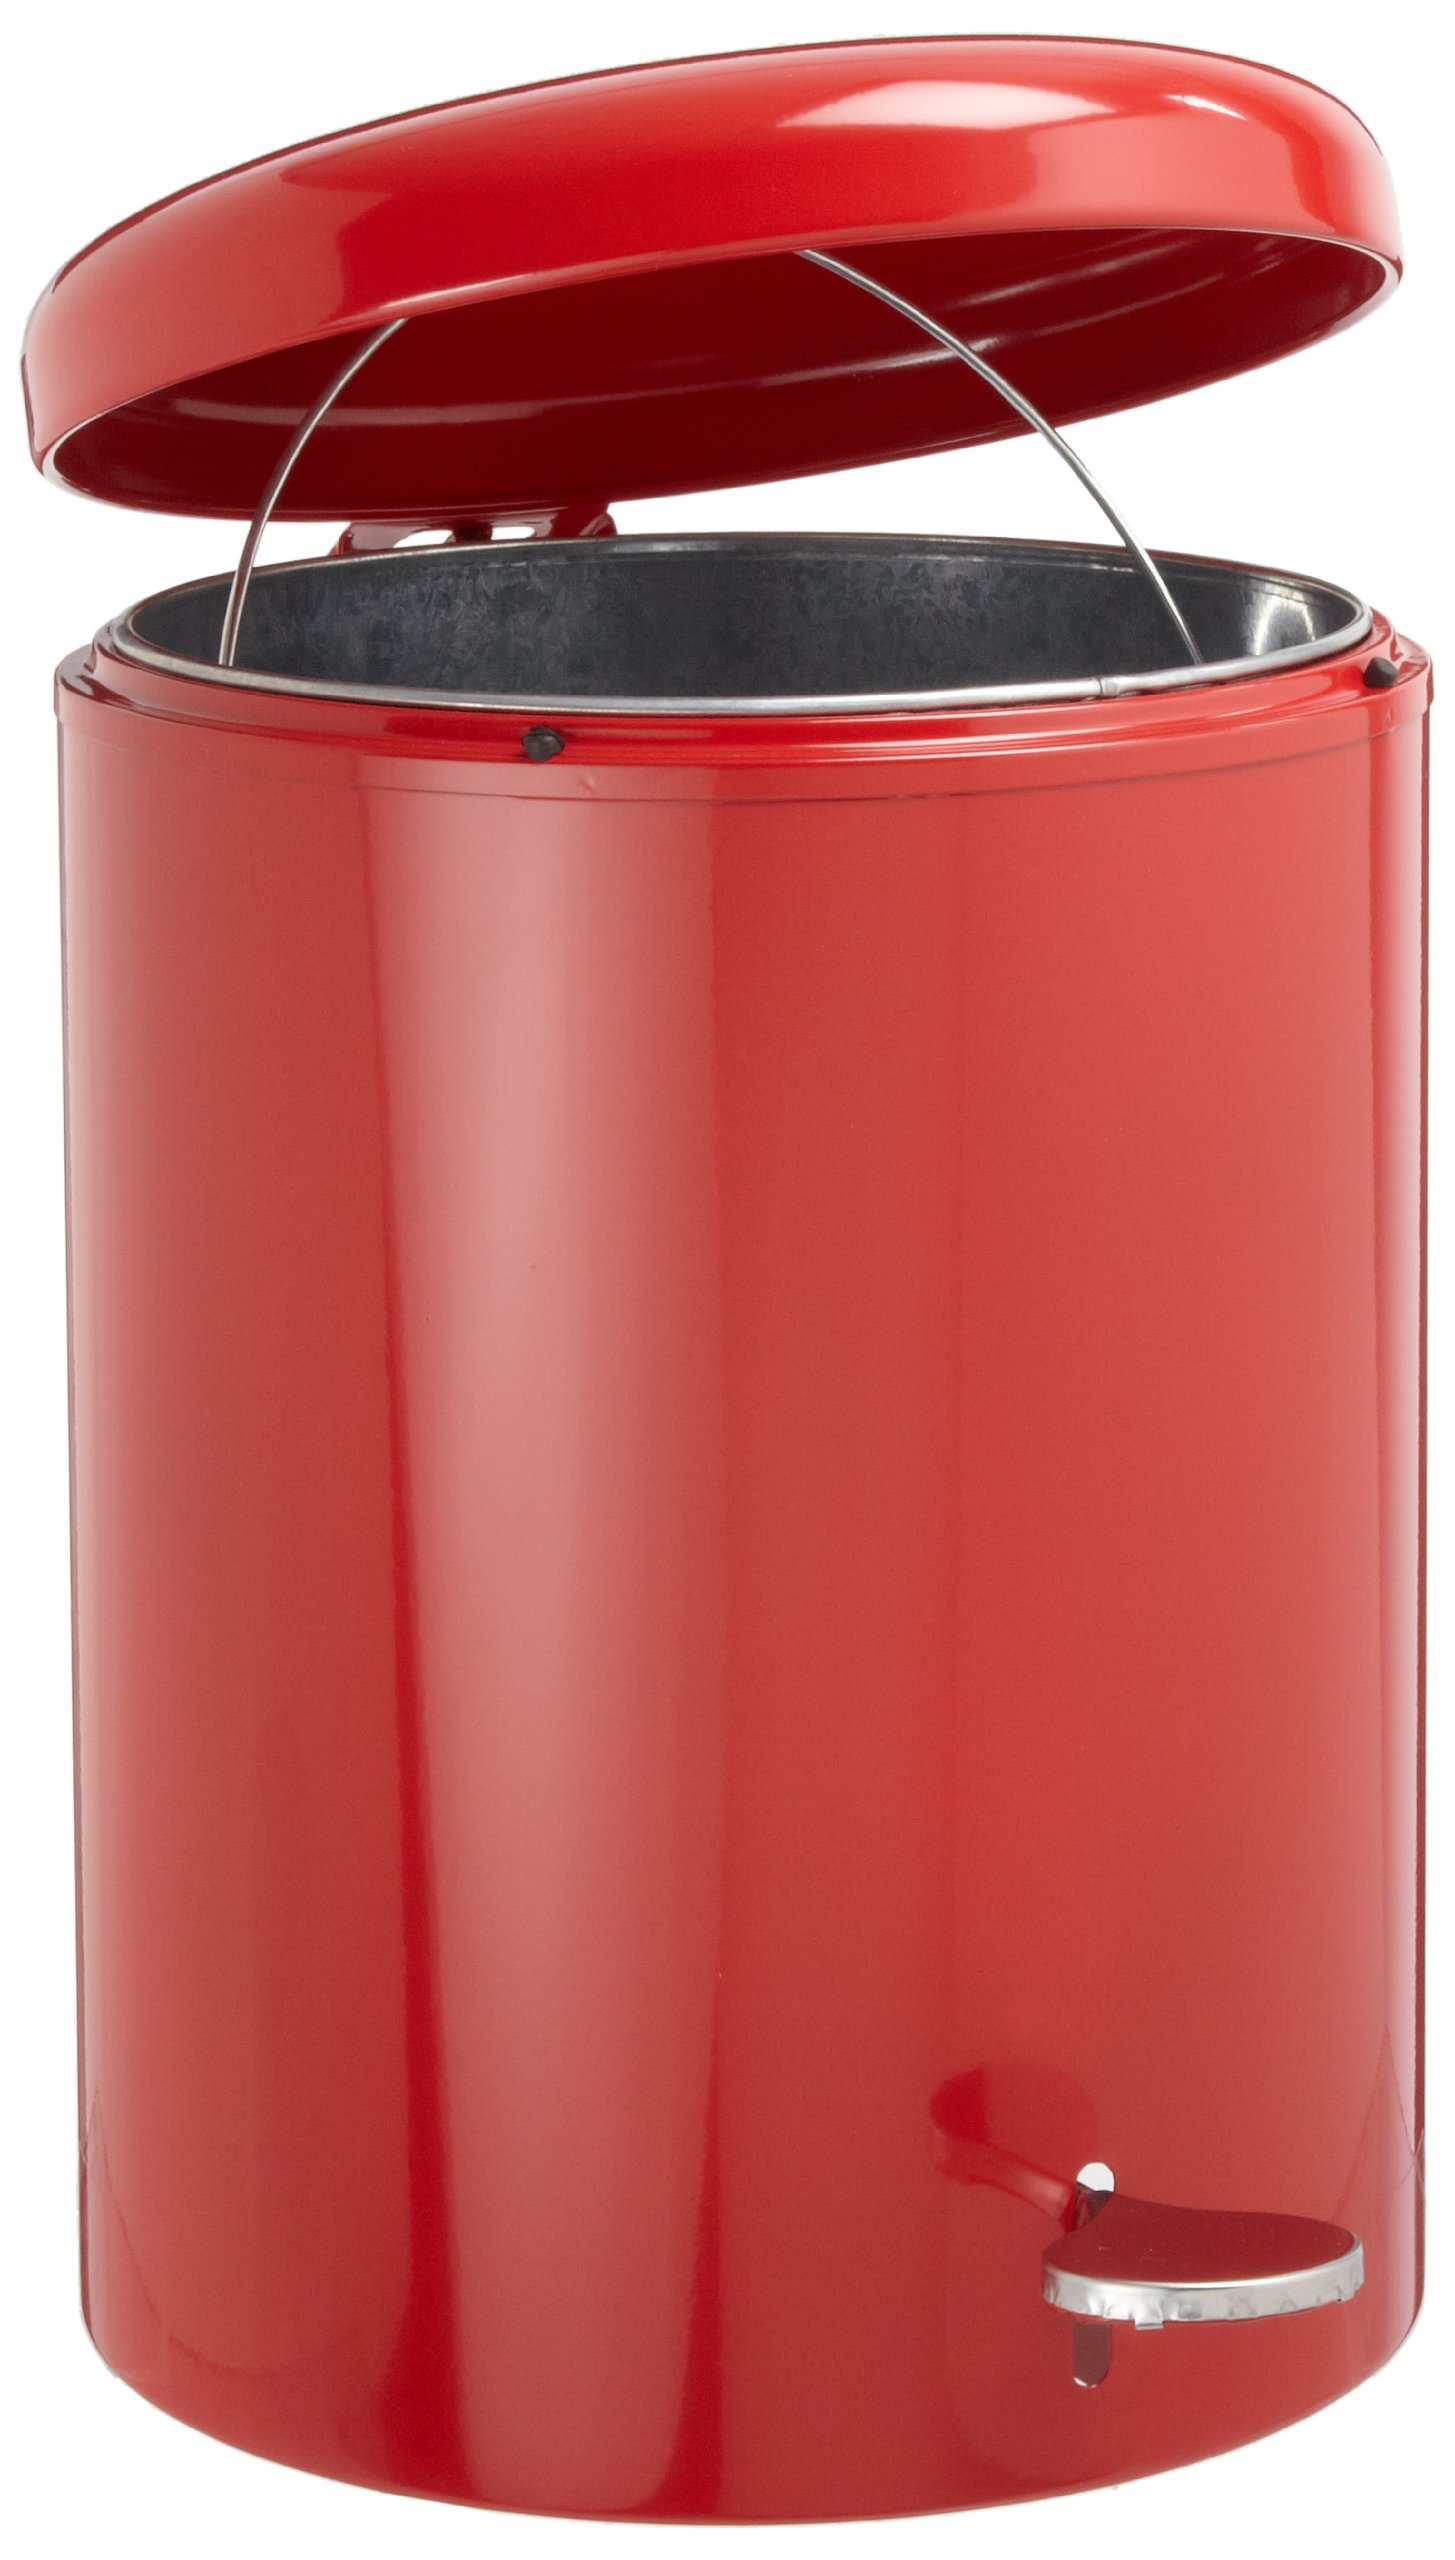 Witt 2240RD Step On Metal Biohazard Waste Container, 4gal Capacity, 11-1/2'' Diameter x 16'' Height, Red by Witt Industries